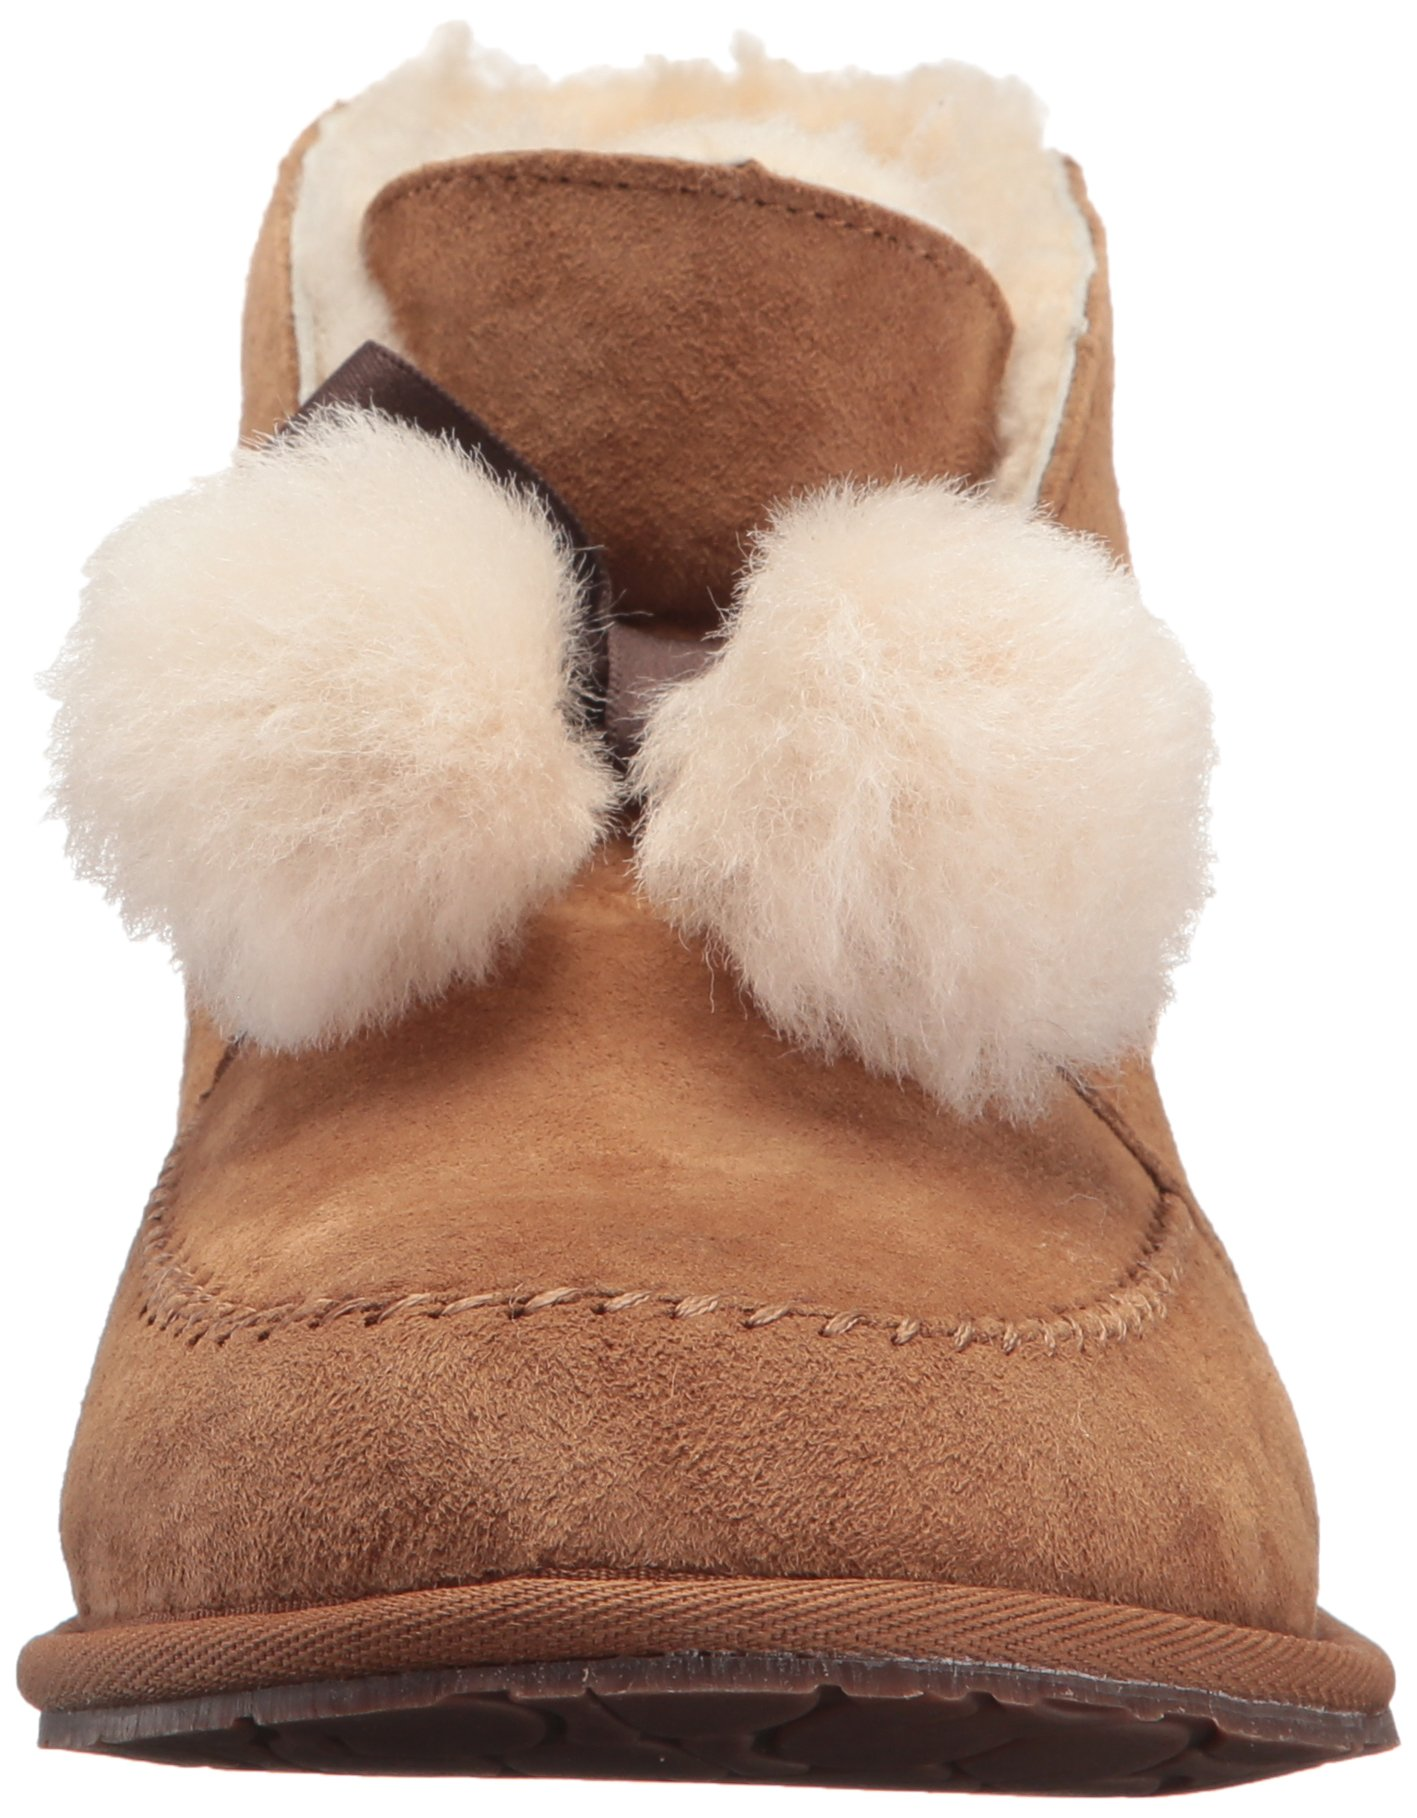 UGG Women's Kallen Slouch Boot, Chestnut, 8 M US by UGG (Image #4)